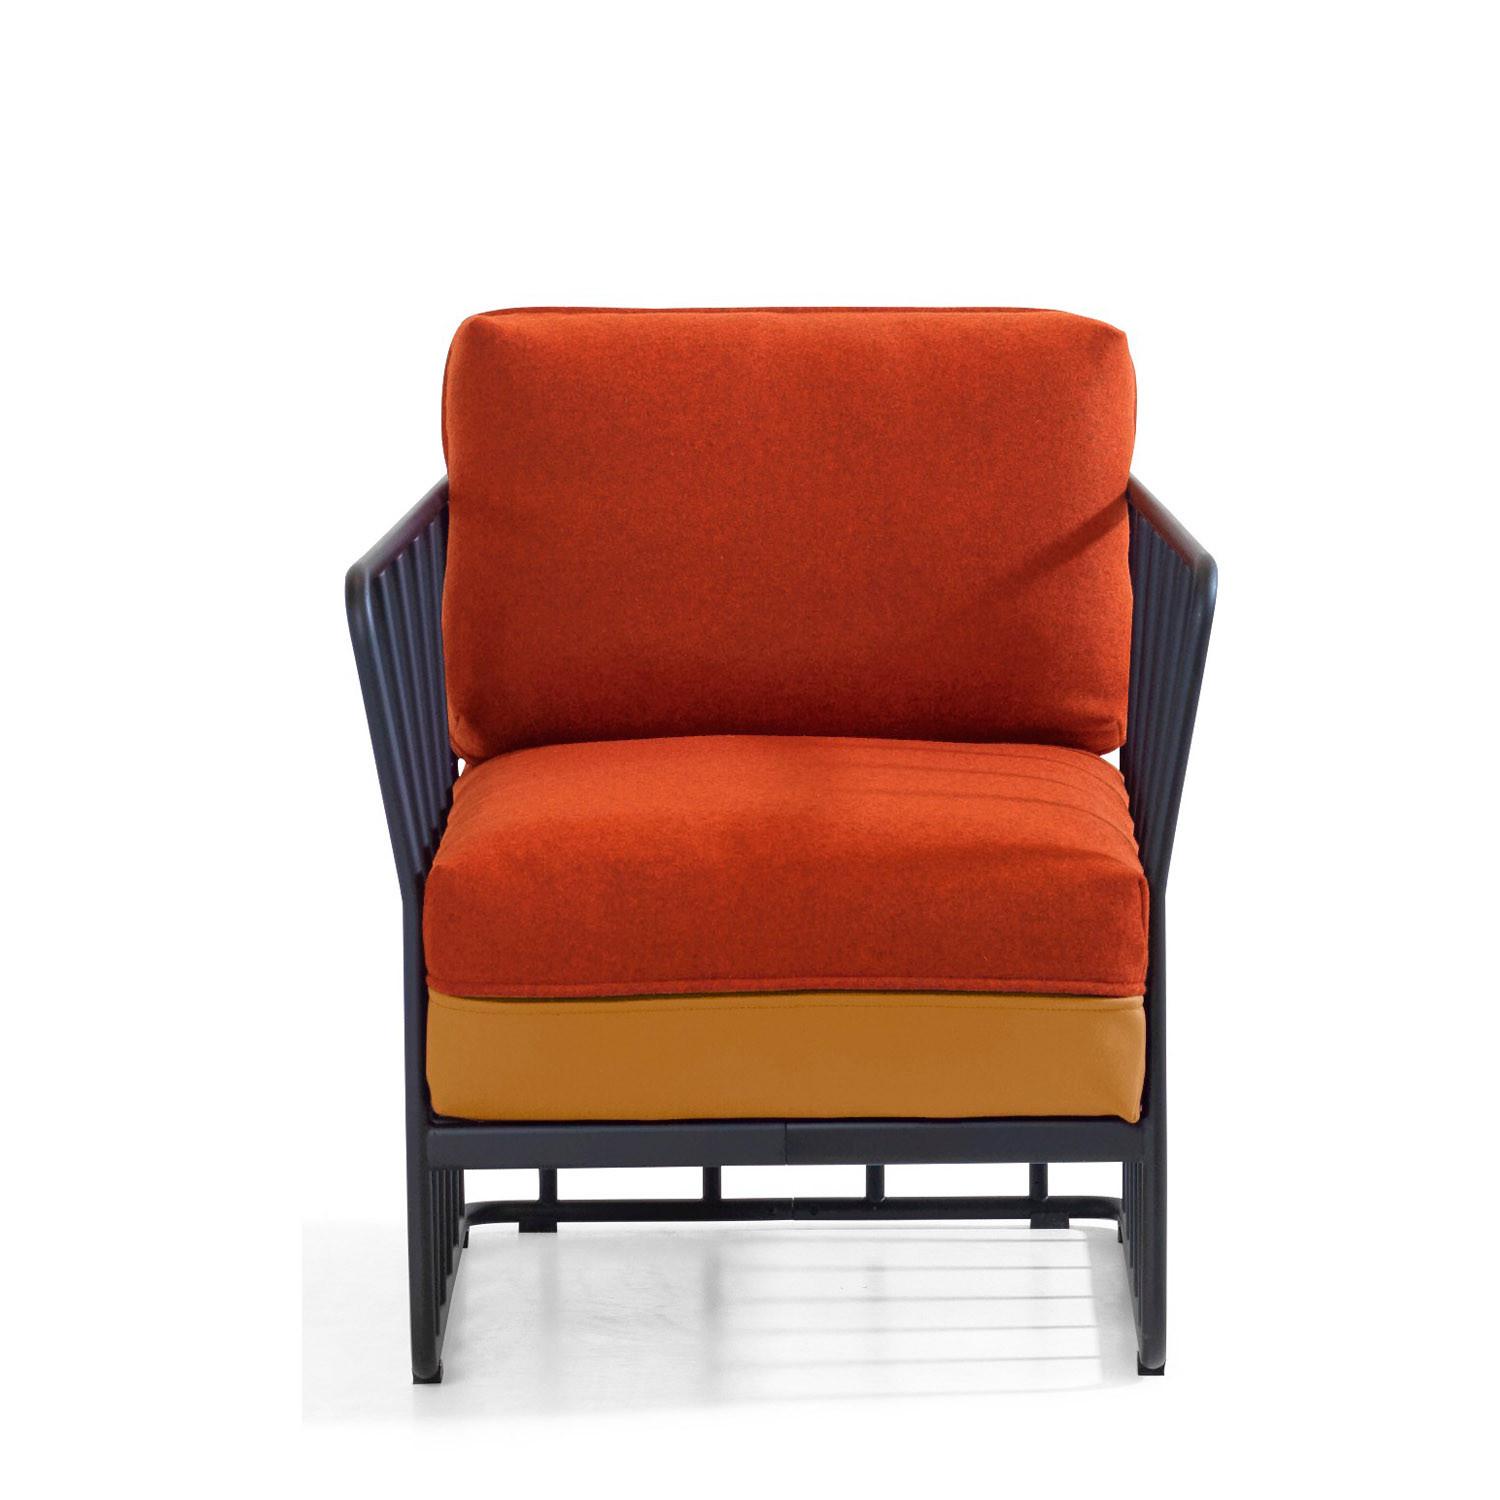 Code 27-A Chair with Colour Contrast